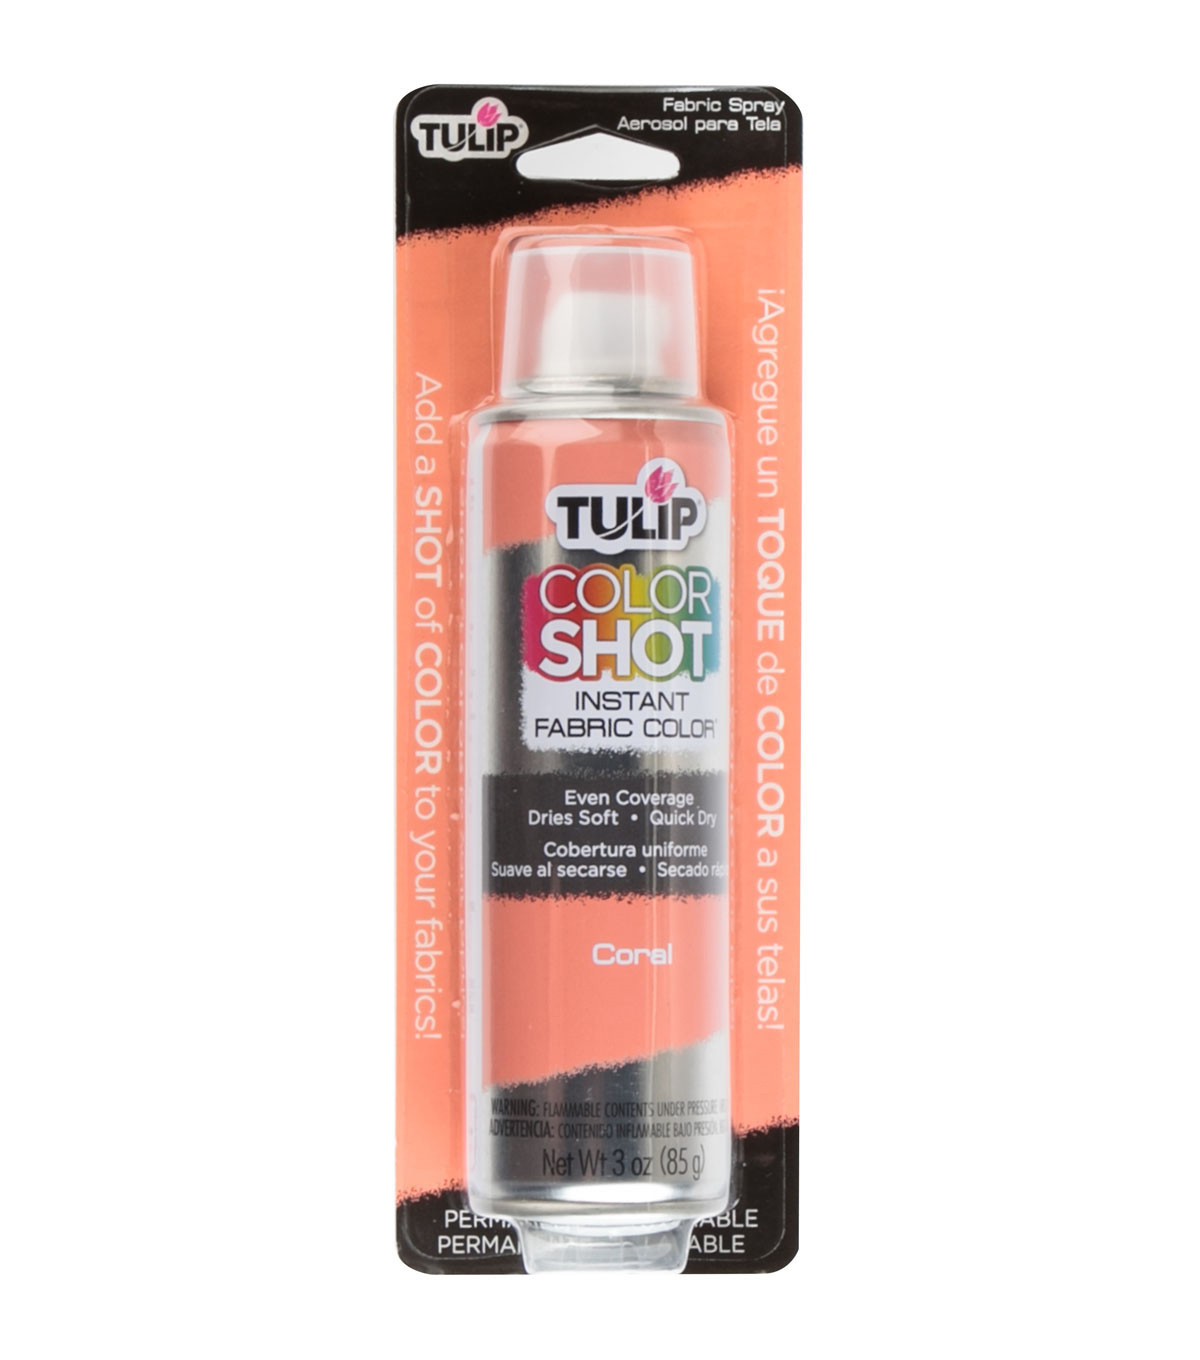 Tulip ColorShot Instant Fabric Color Spray 3oz, Coral